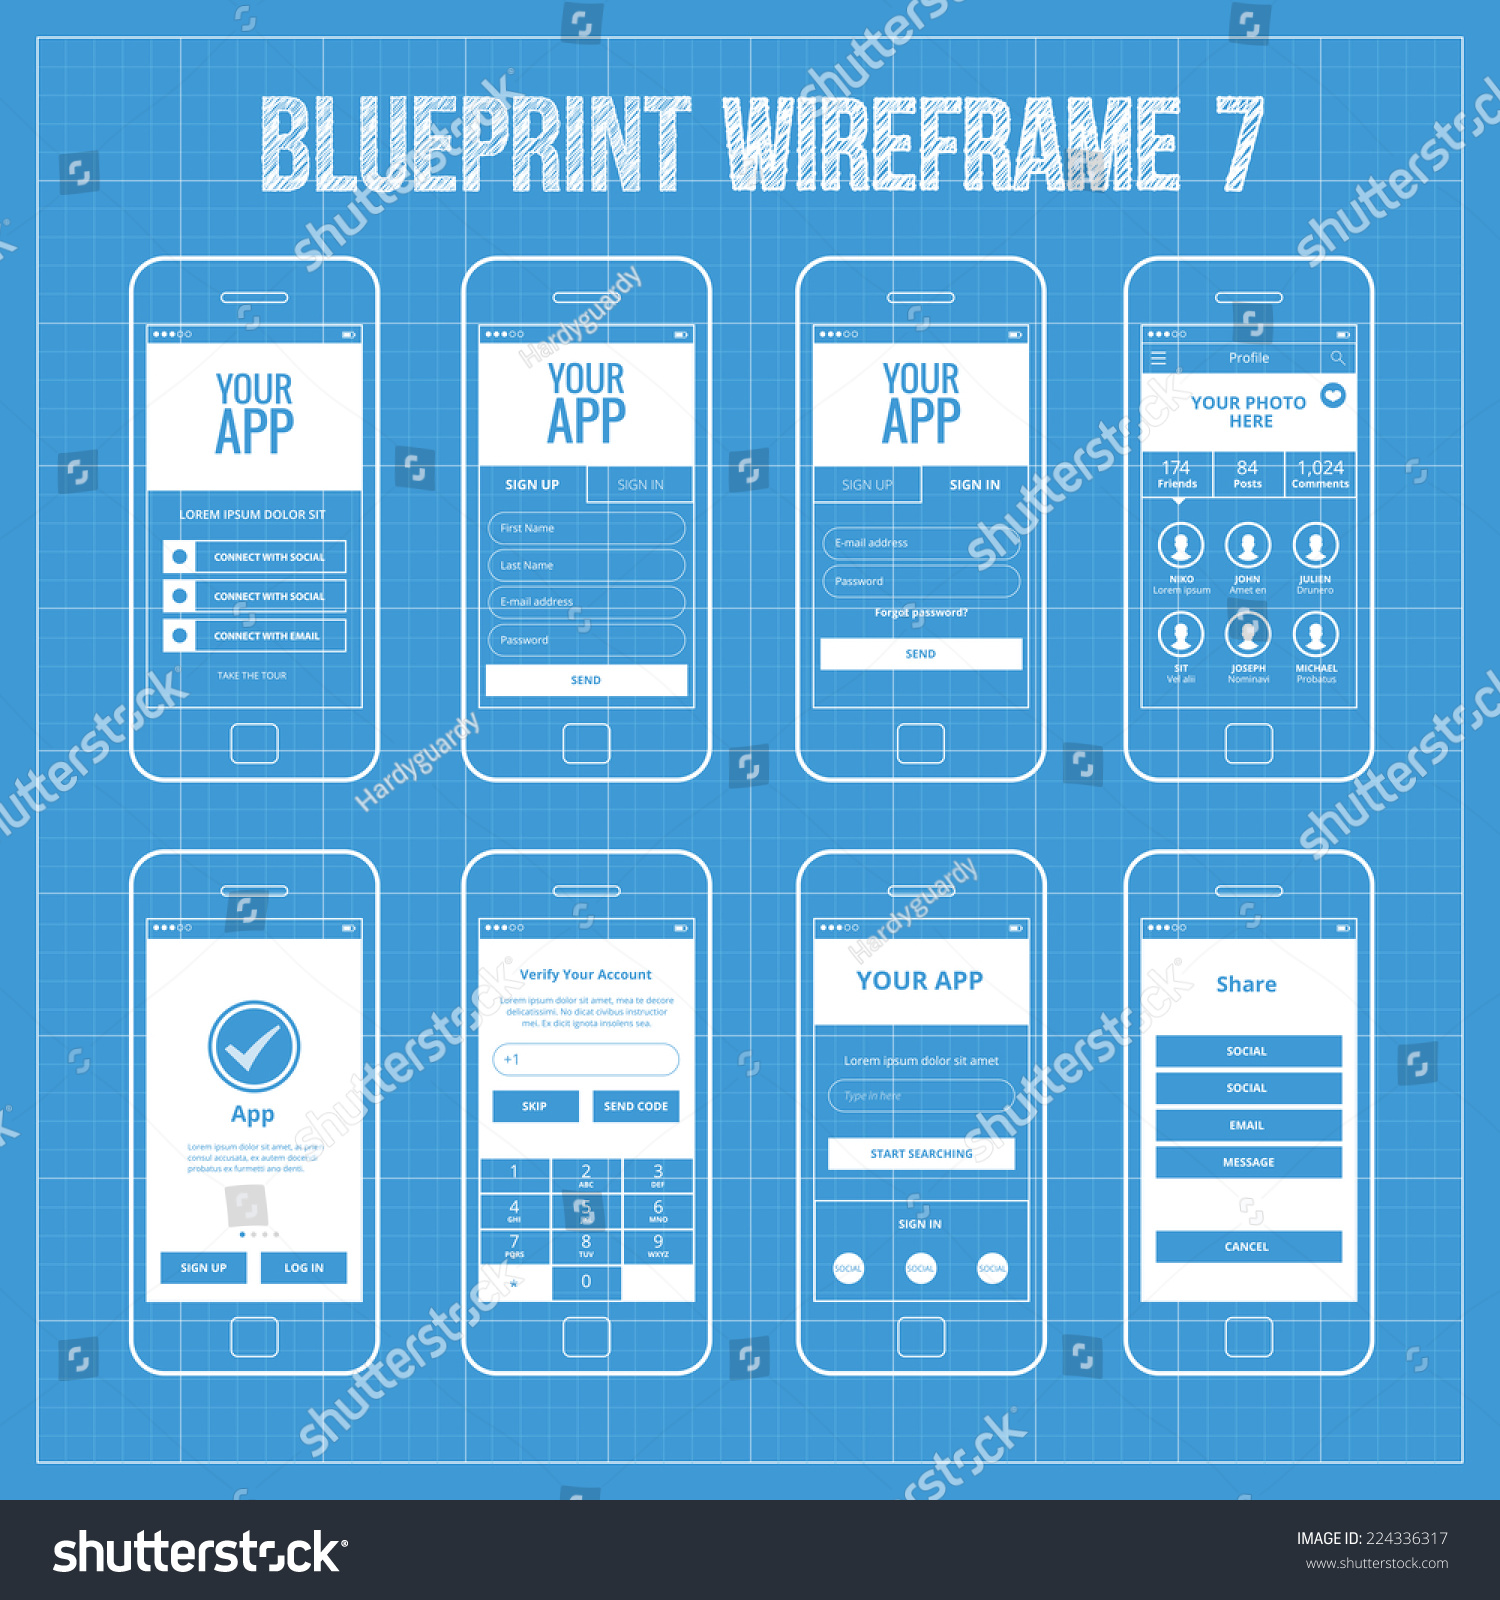 Blueprint mobile app wireframe ui kit vector de stock224336317 blueprint mobile app wireframe ui kit 7 welcome screen sign in screen sign malvernweather Images